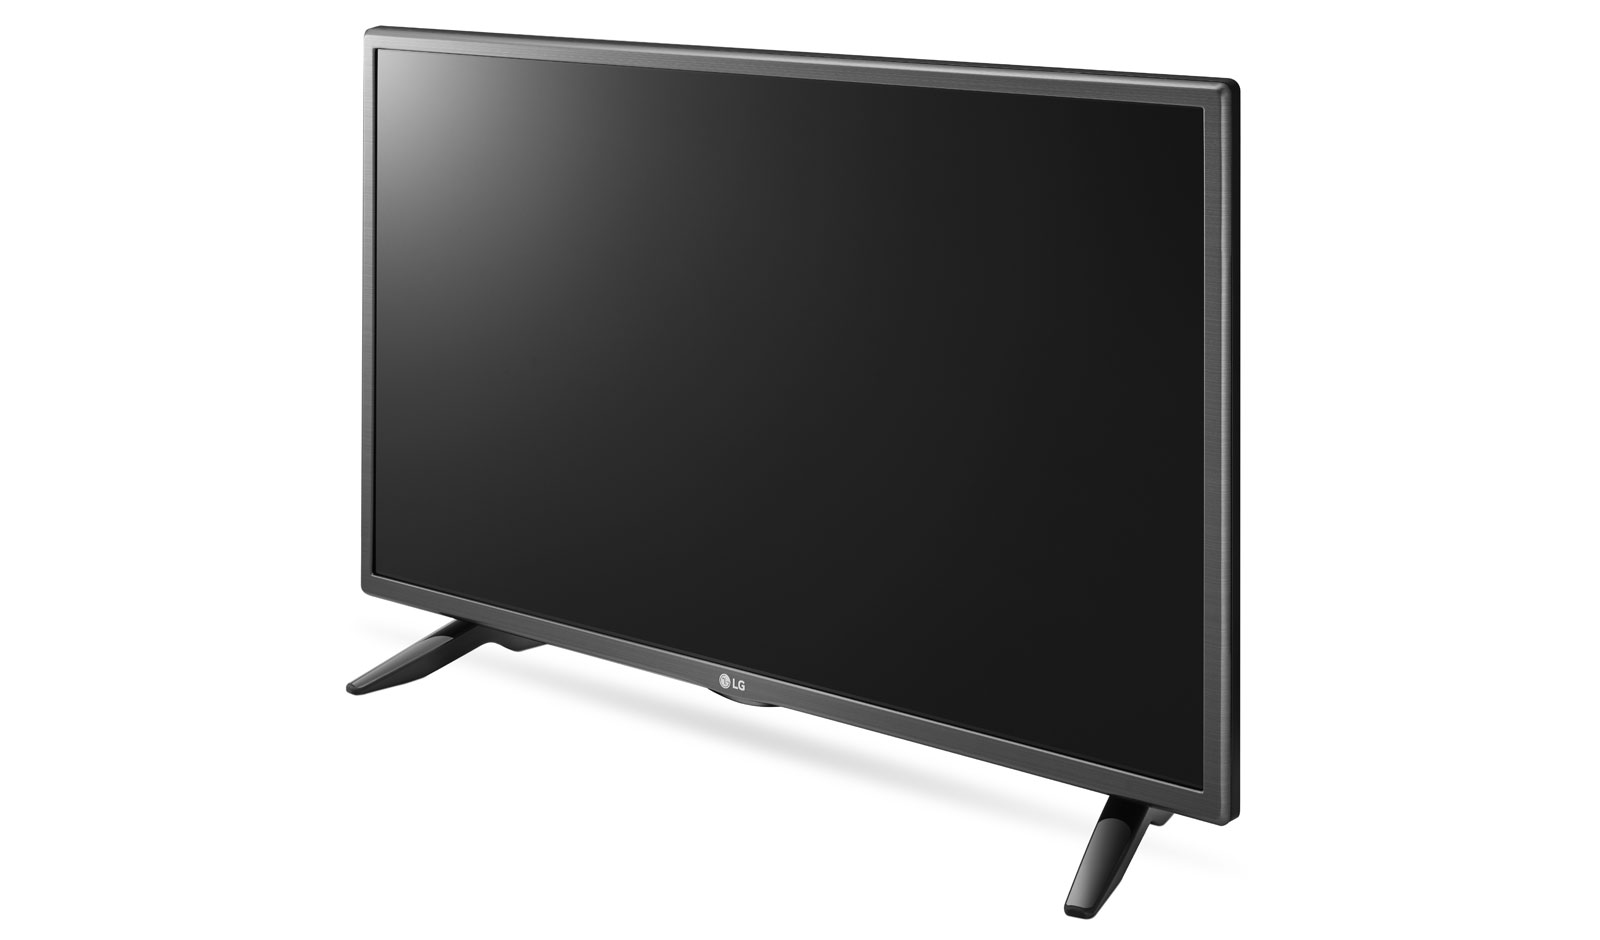 LG Commercial TV 32LW300C 6